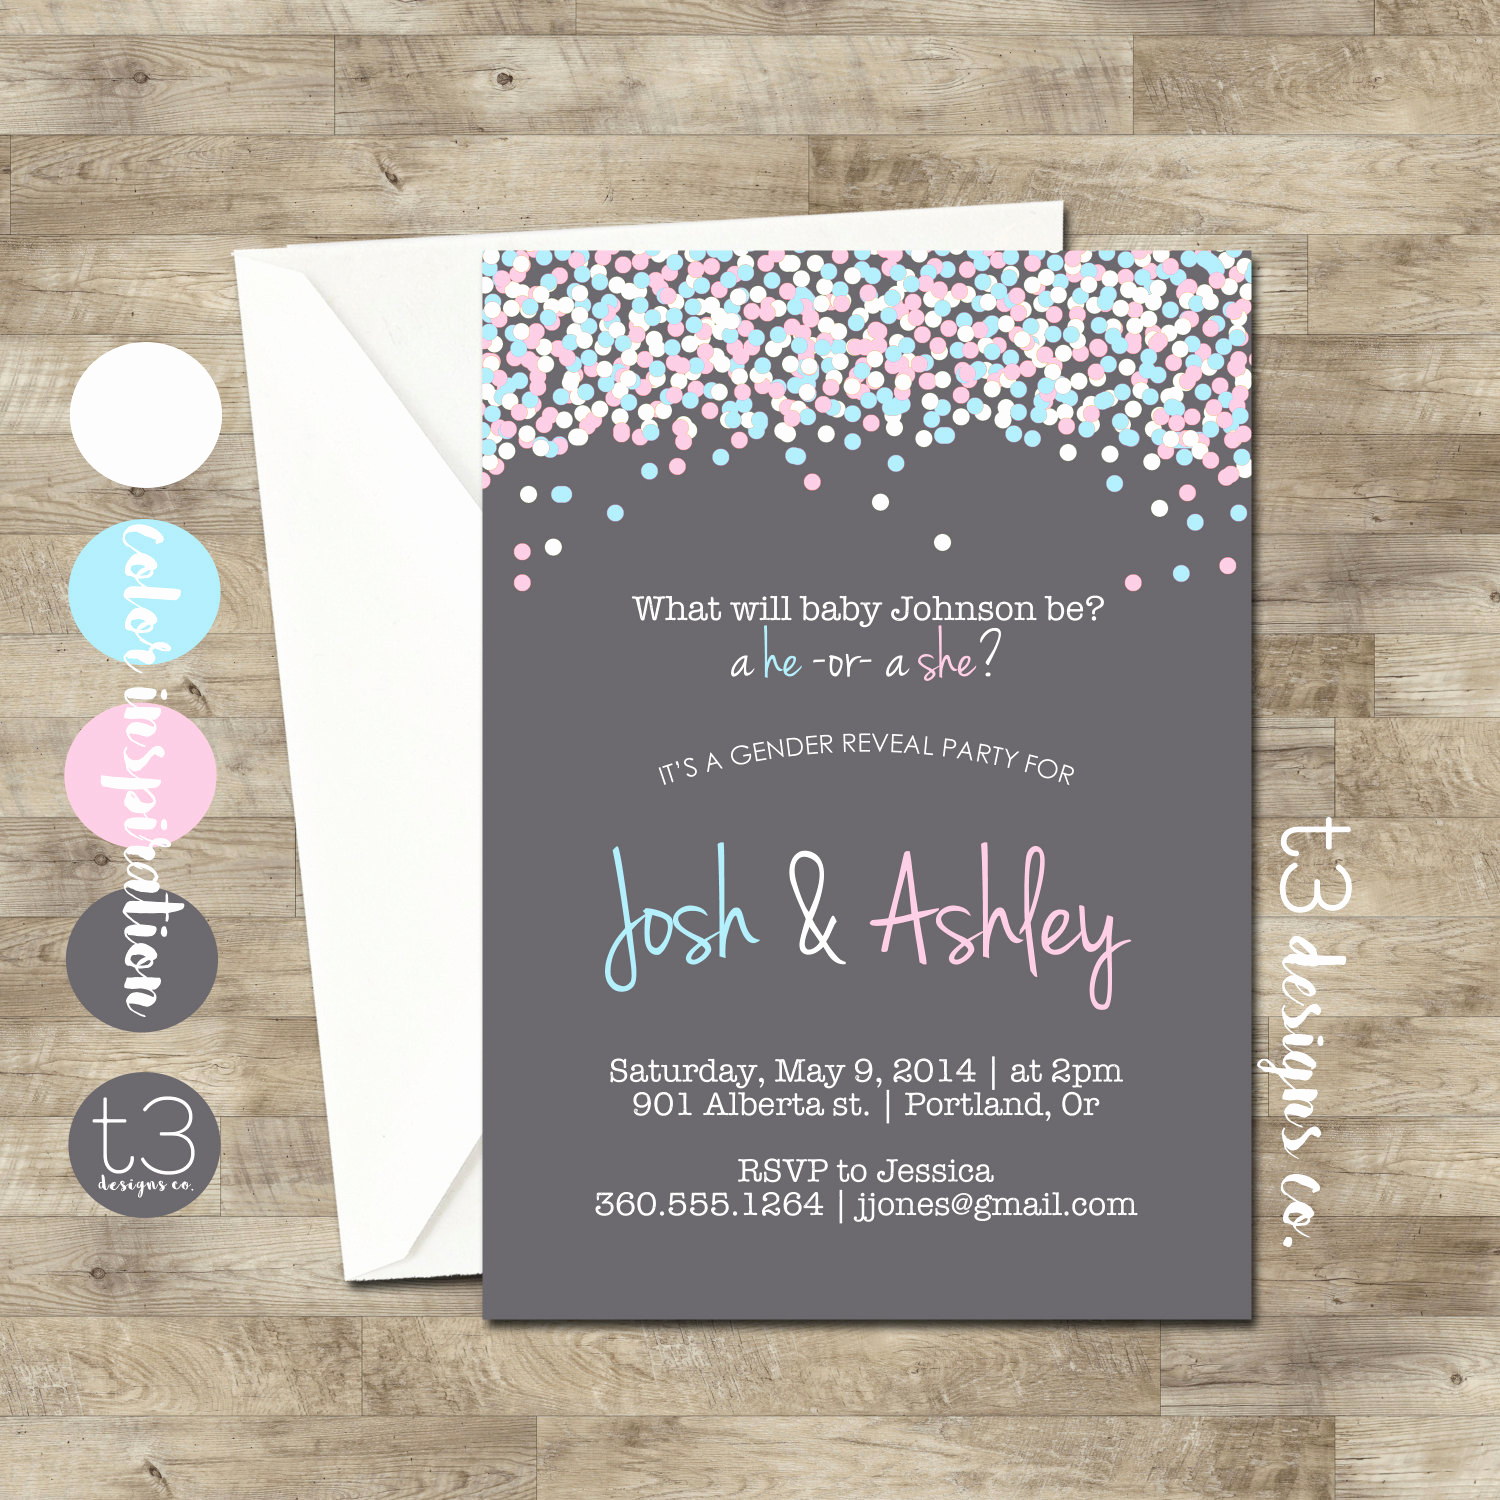 Gender Reveal Invitation Ideas Luxury Gender Reveal Invitation Confetti Gender Reveal Party